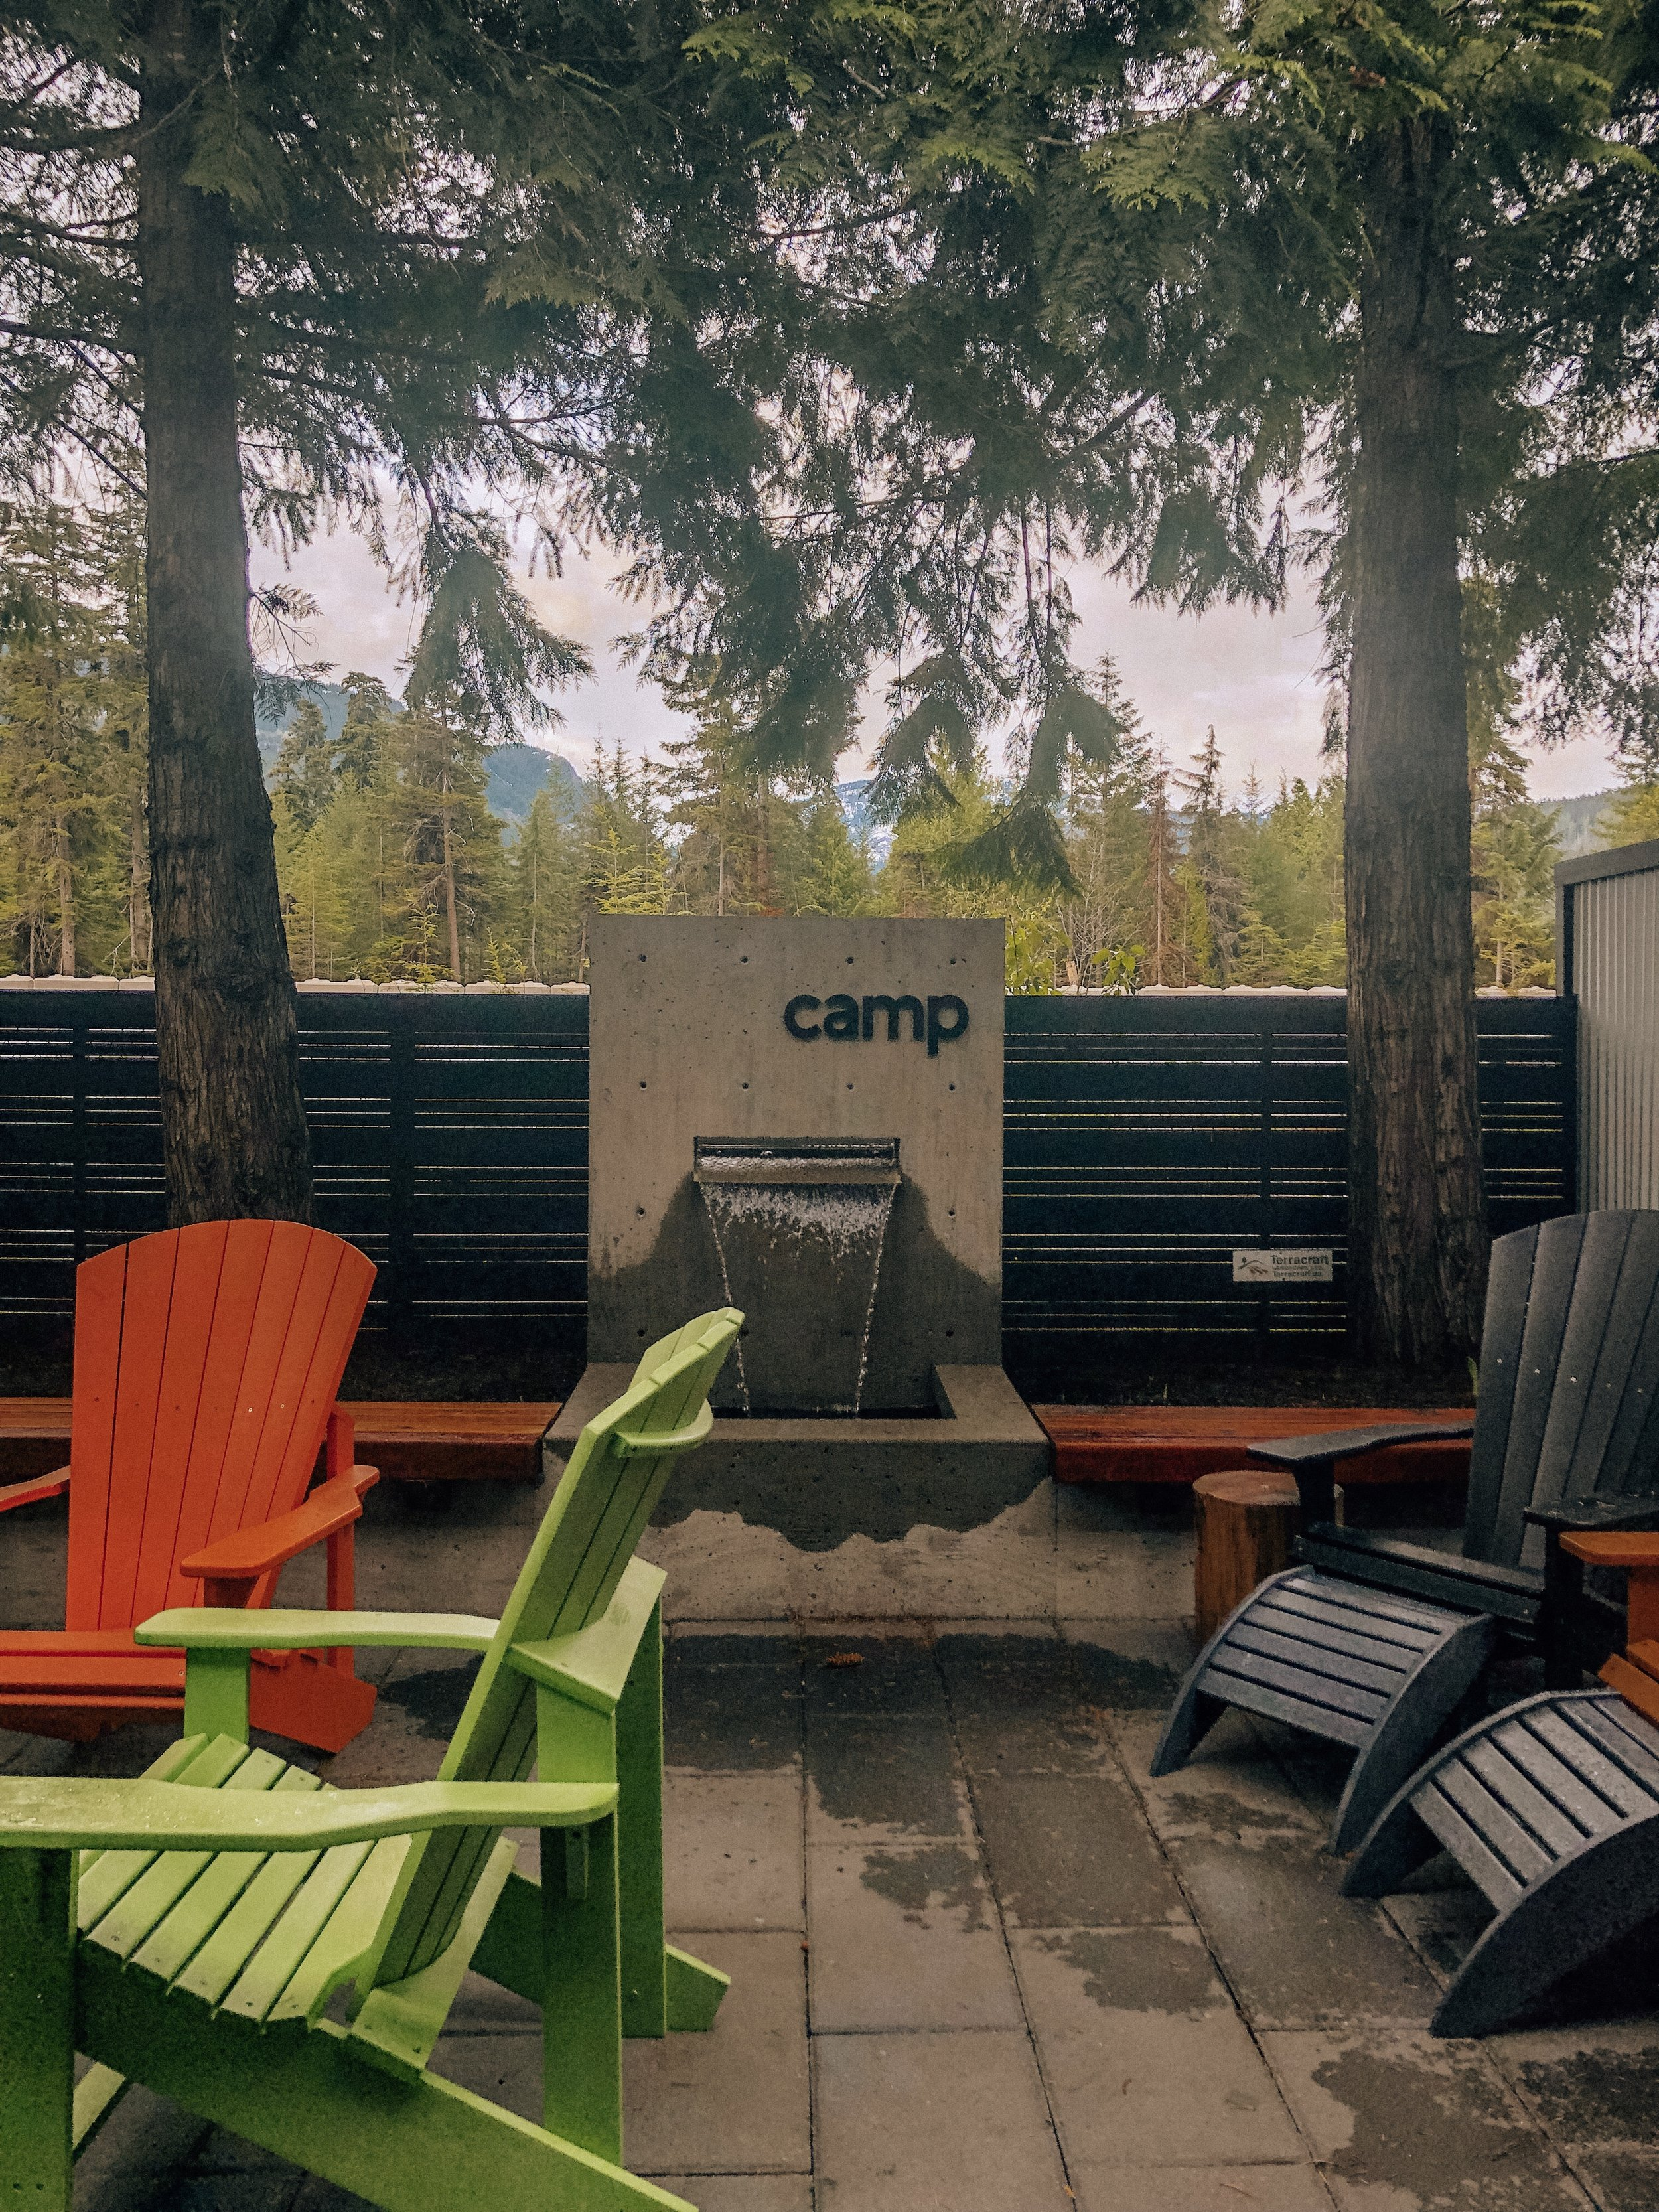 Camp Lifestyle hipster coffee shop cafe in Whistler BC Canada